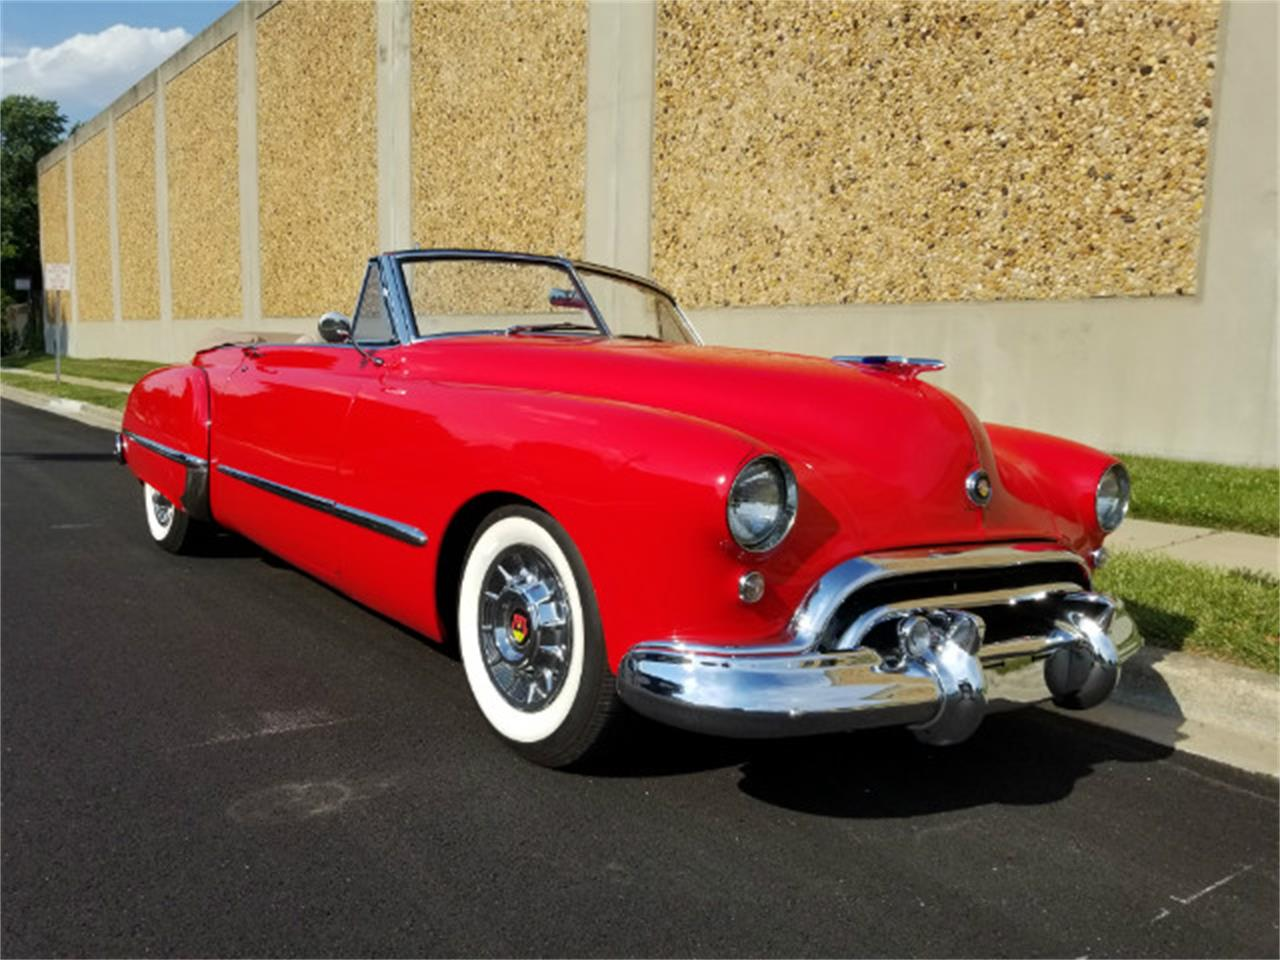 Large Picture of 1948 Oldsmobile Custom Cruiser located in Maryland - $69,500.00 - LE0W